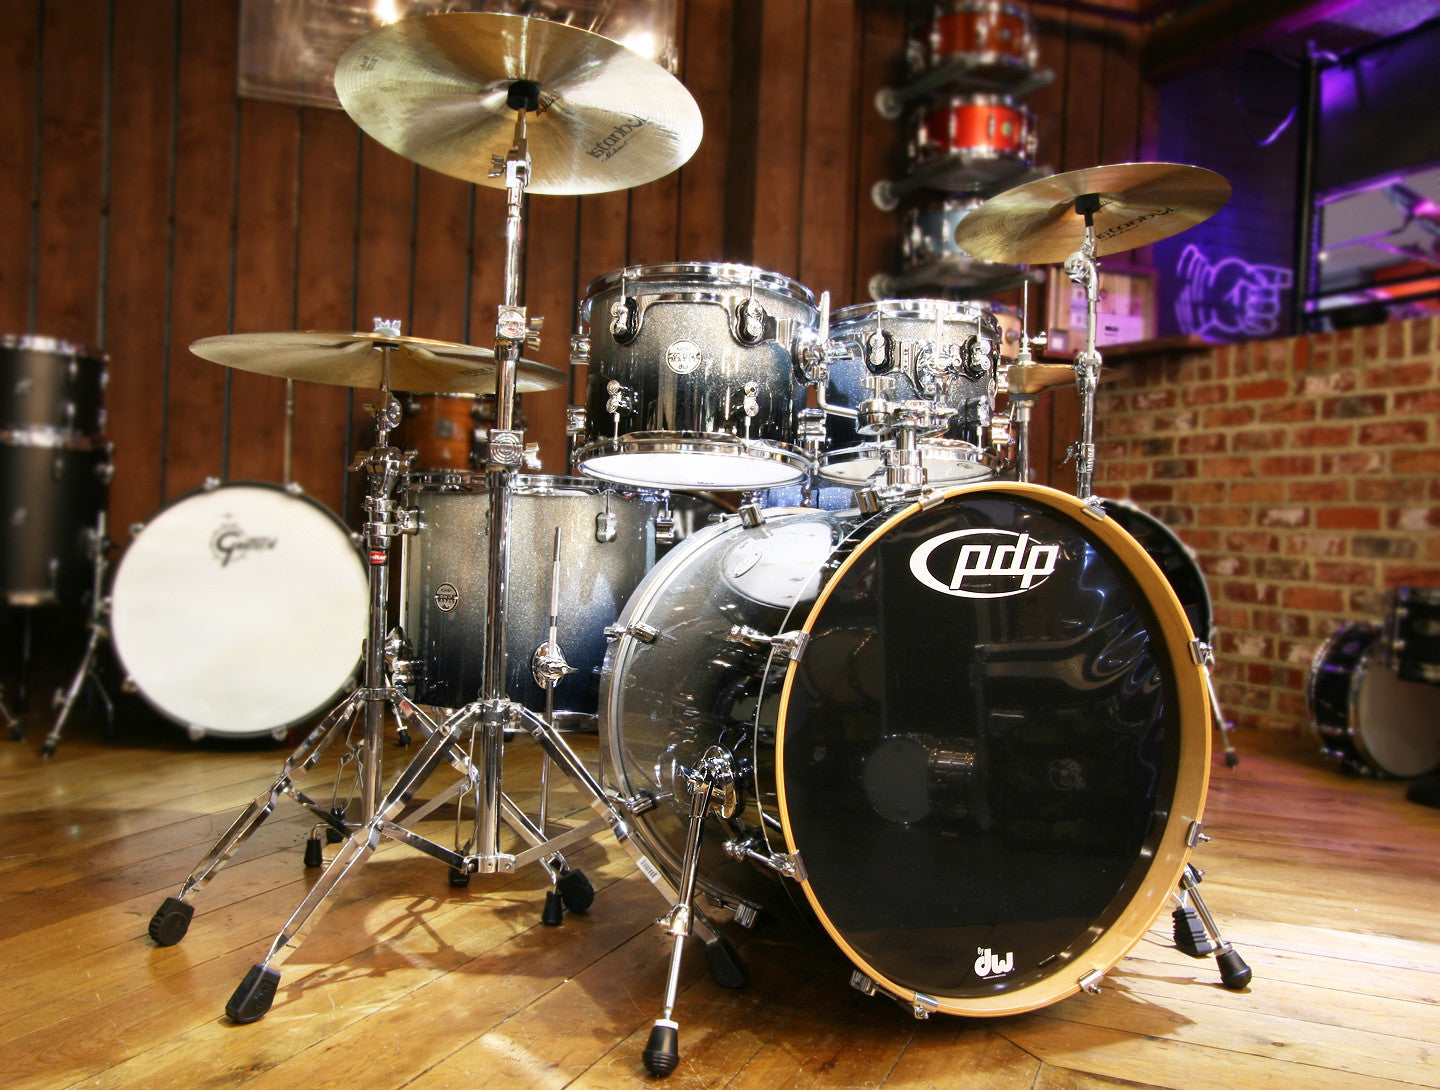 DW PDP Concept Maple 6-Piece Shell Pack in Silver to Black Sparkle Fade